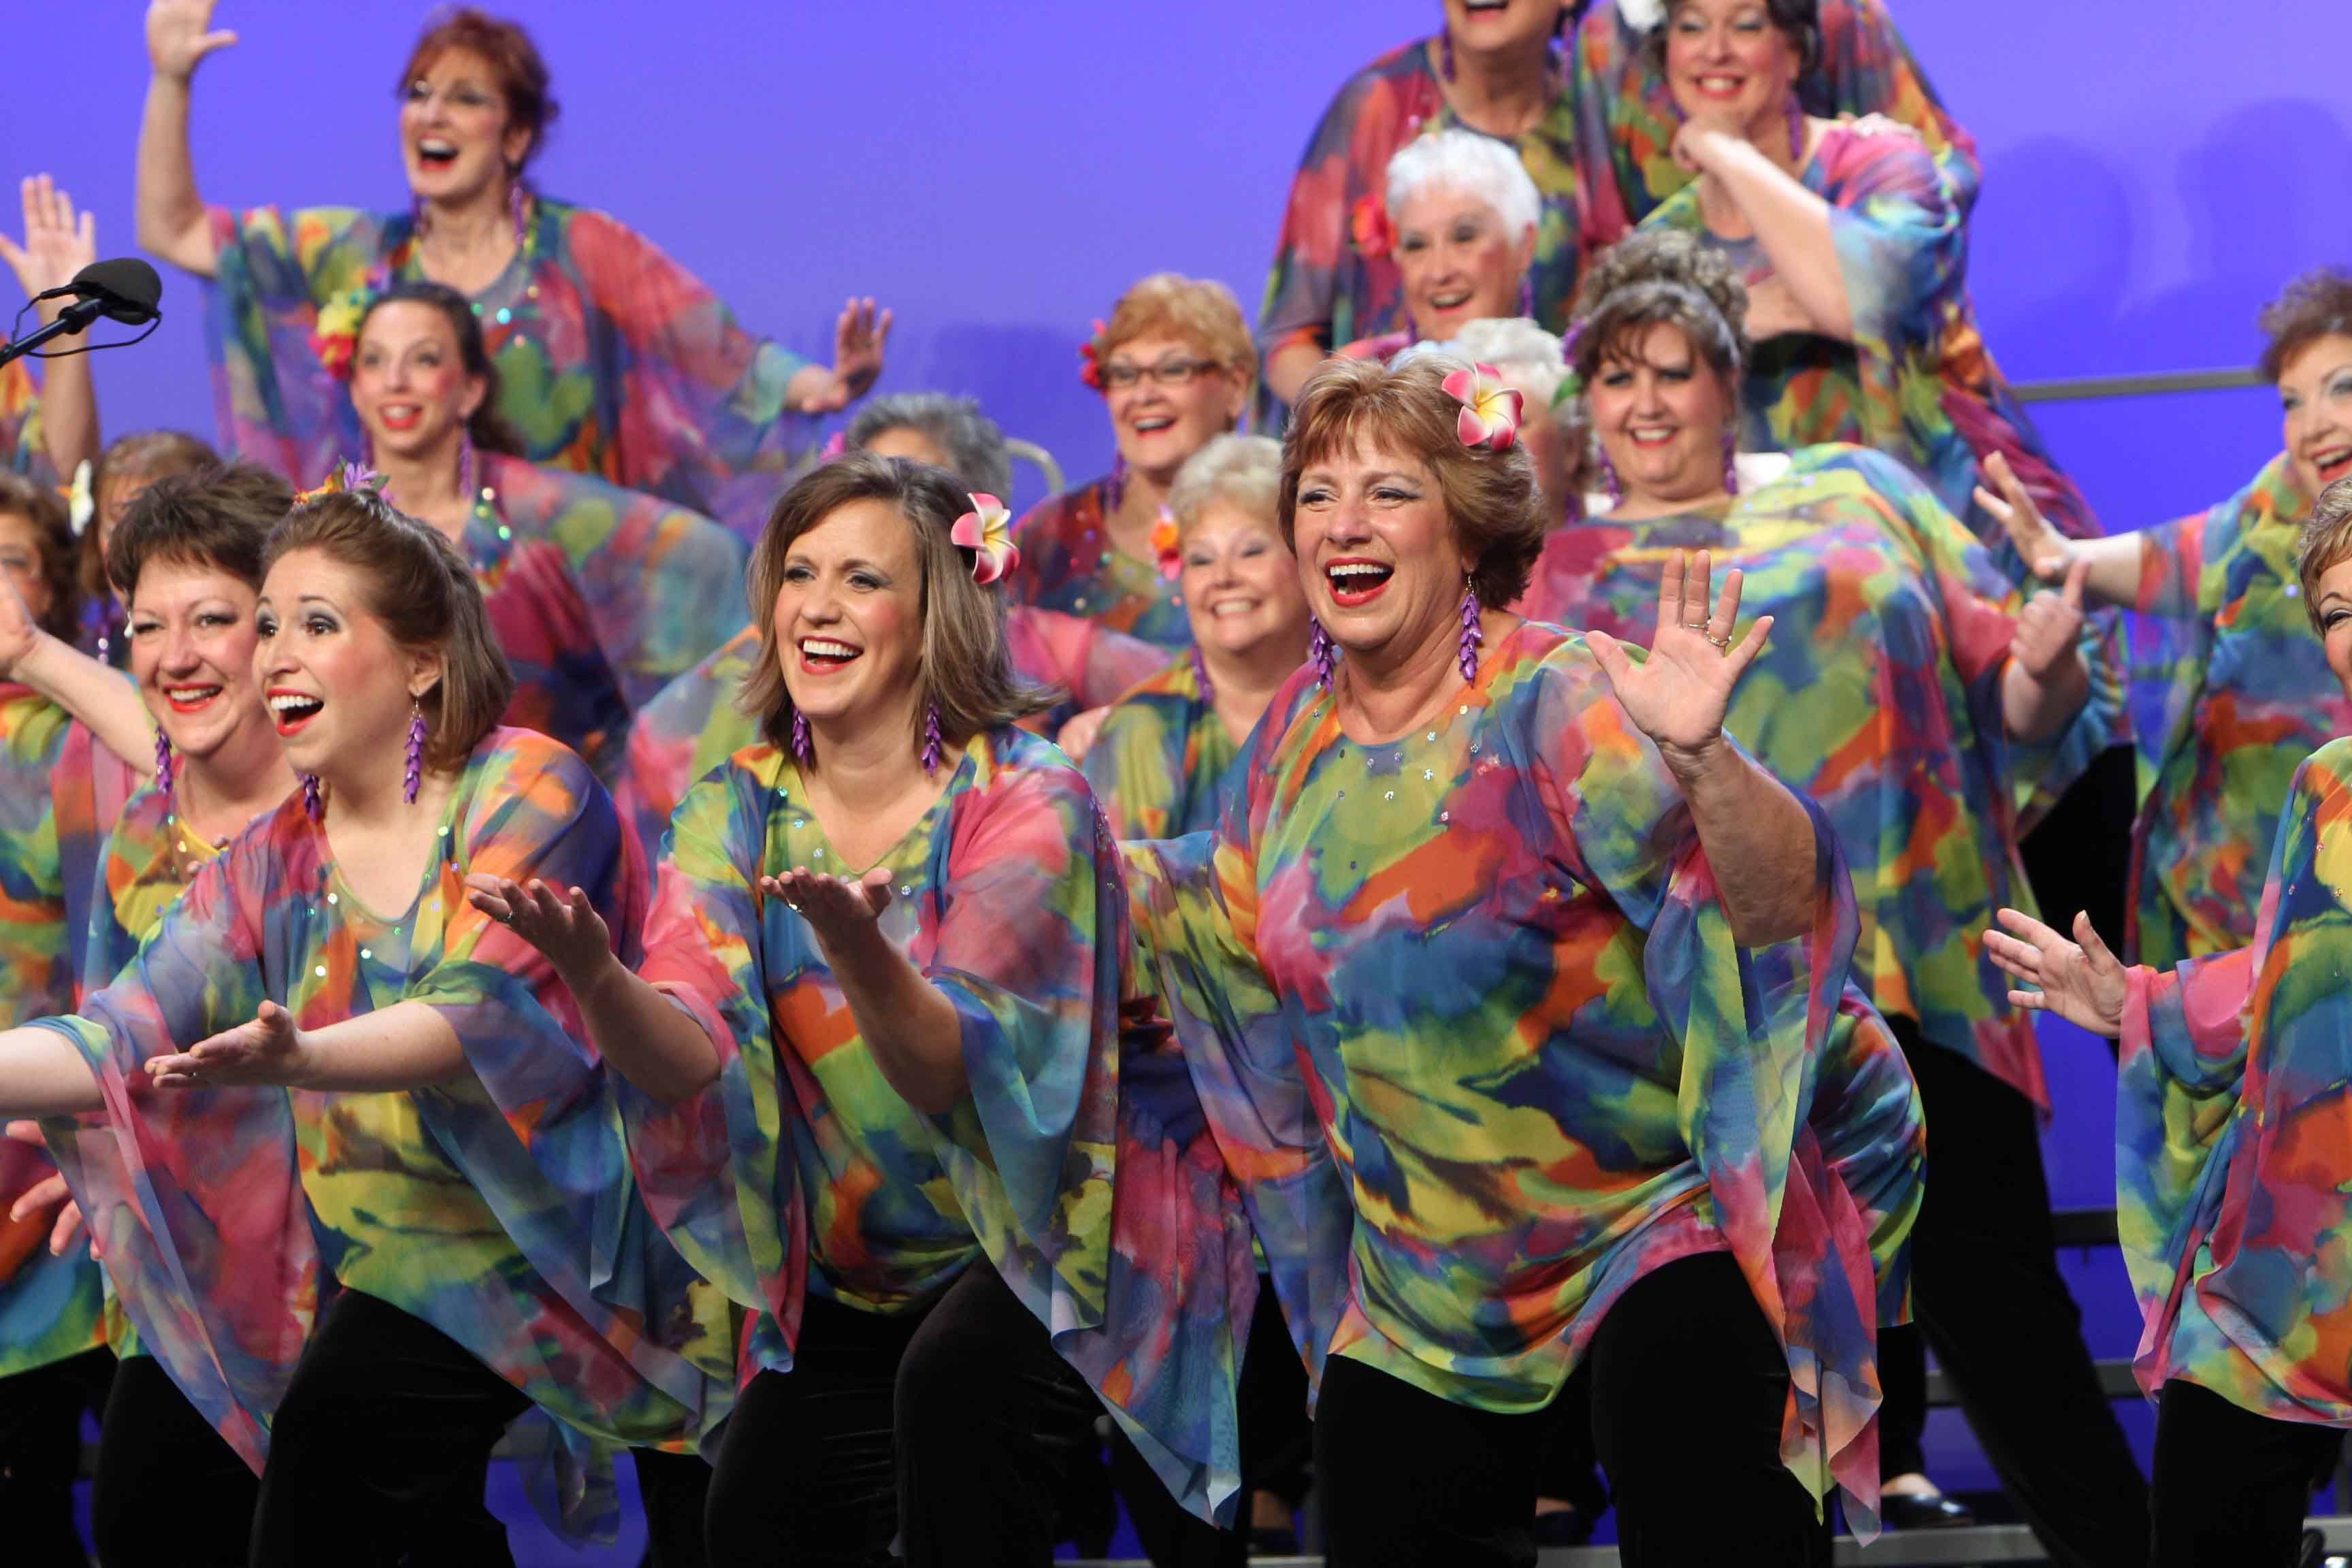 The Choral-Aires Chorus will sing the national anthem at the Kane County Cougars game in Geneva against the Wisconsin TimberRattlers on Tuesday, June 24.